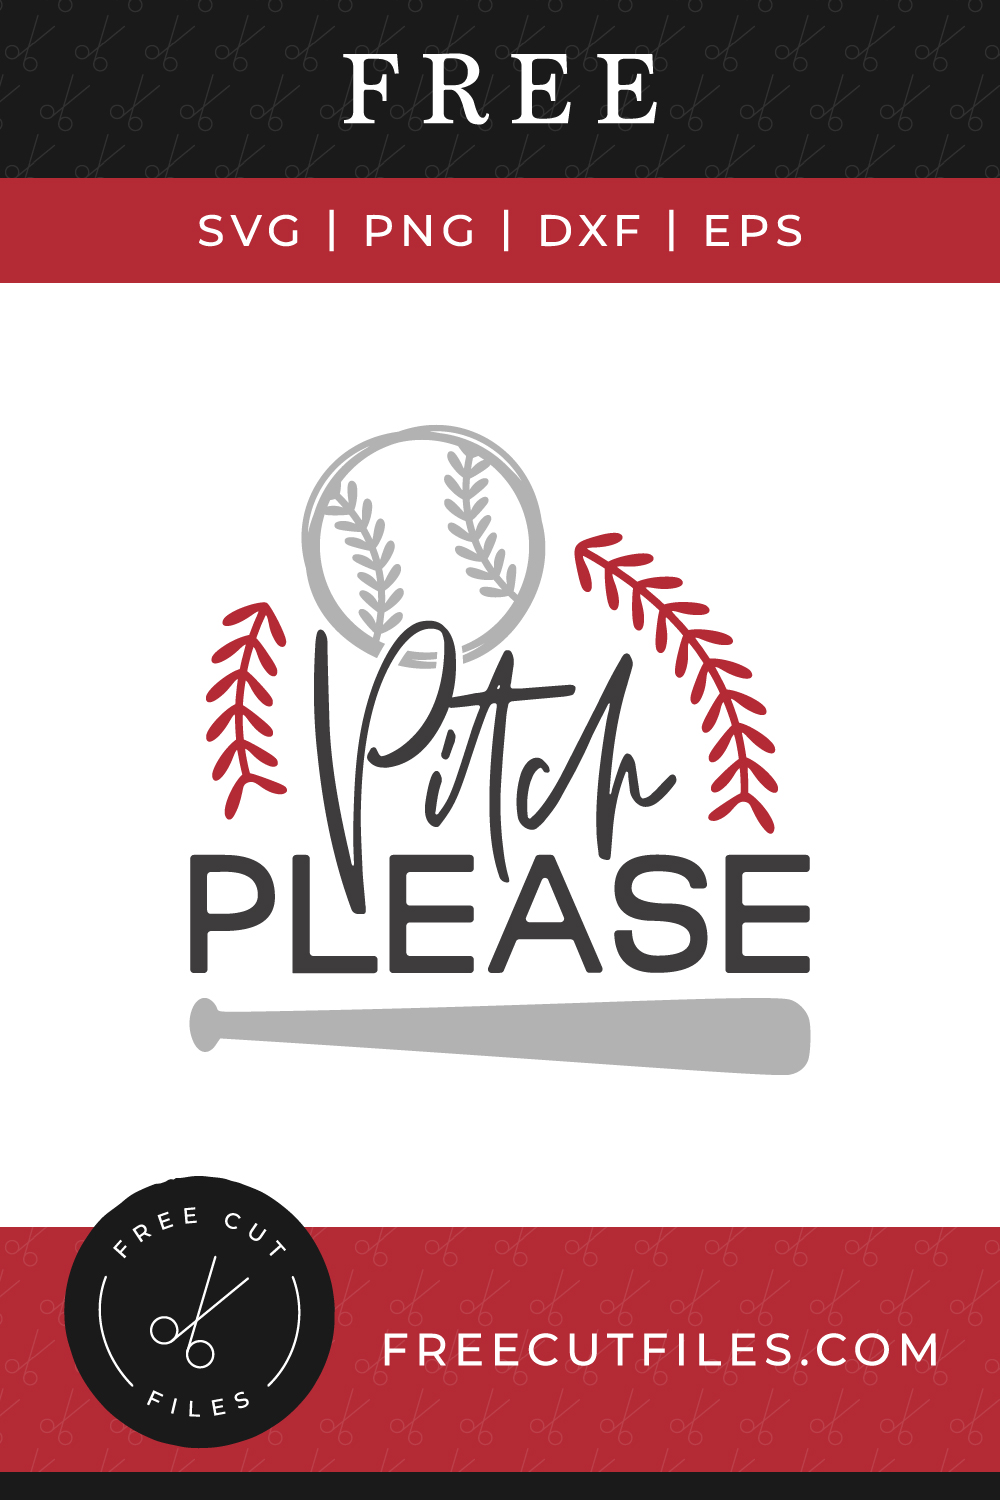 Free SVG baseball quote - Pitch please